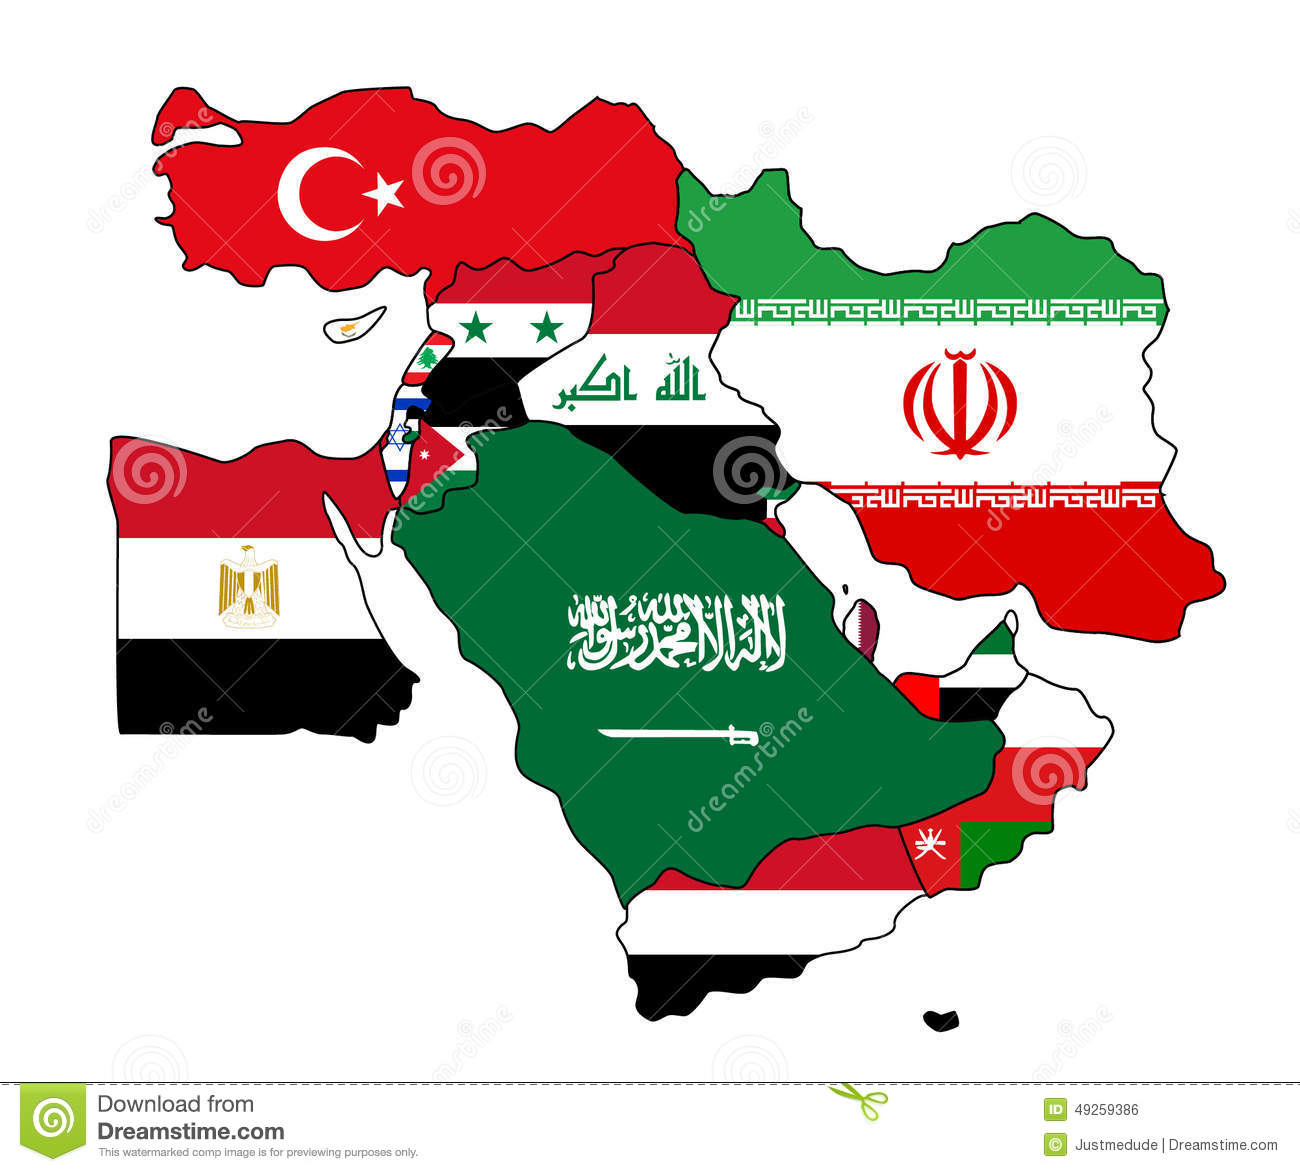 Map of the middle east with each country colored in with its flag.